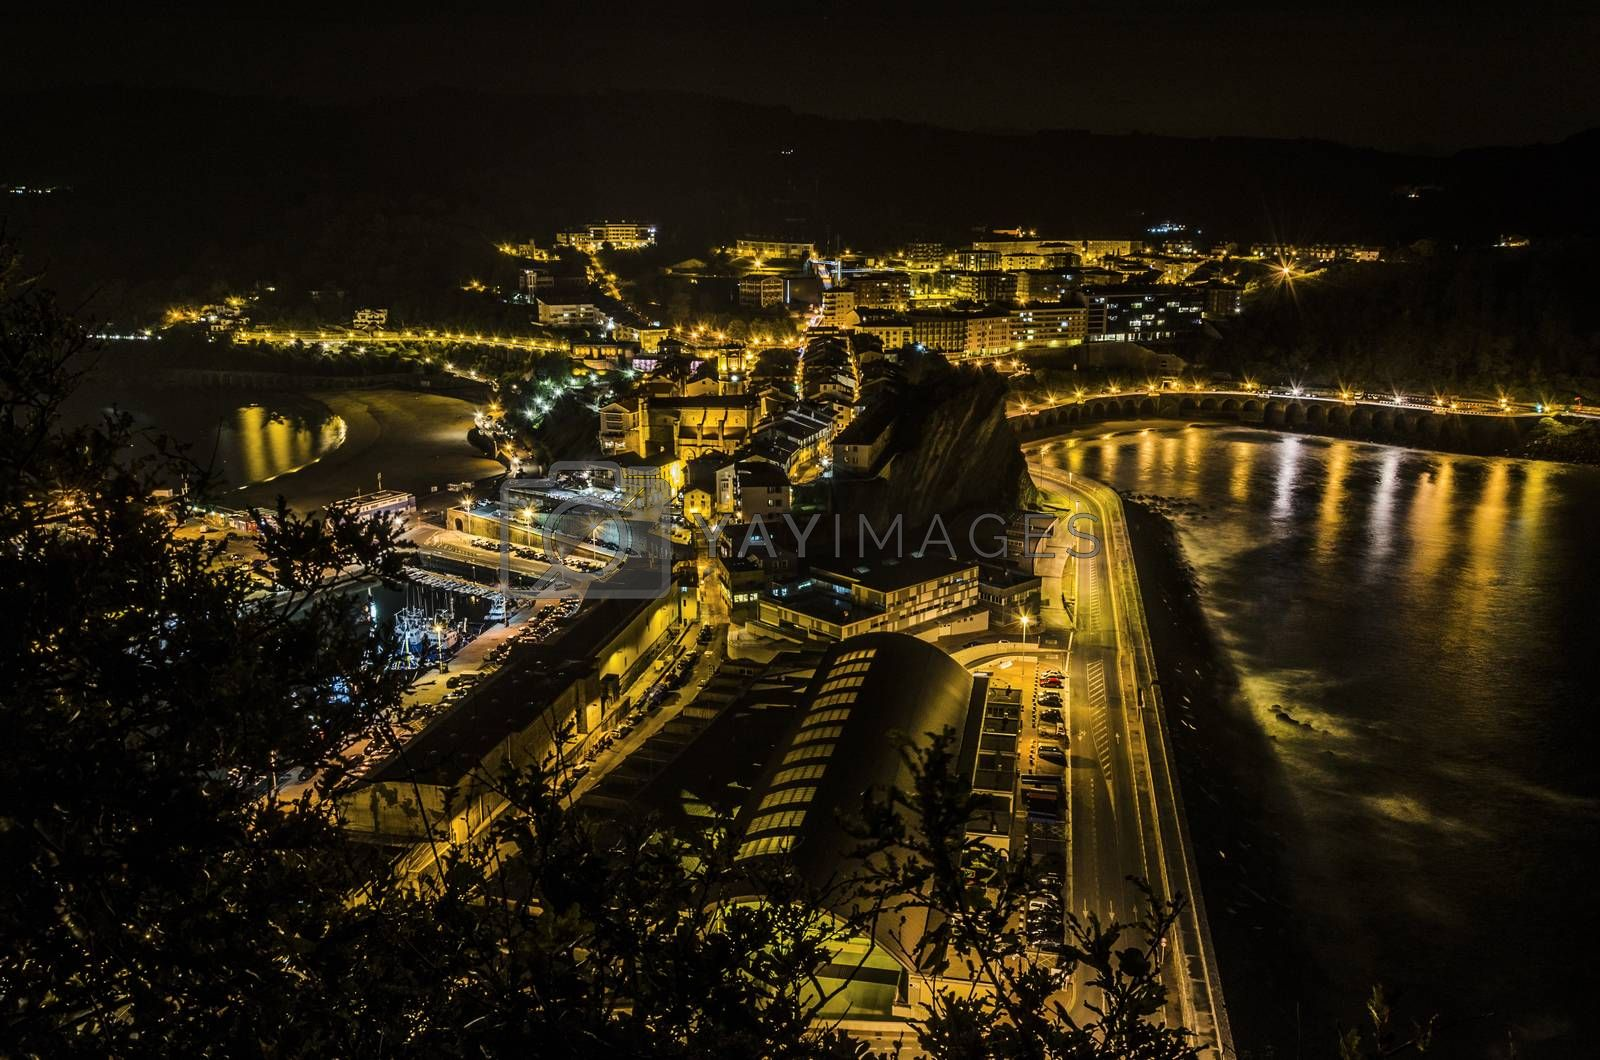 Beautiful night cityscape over the Getaria city in Spain